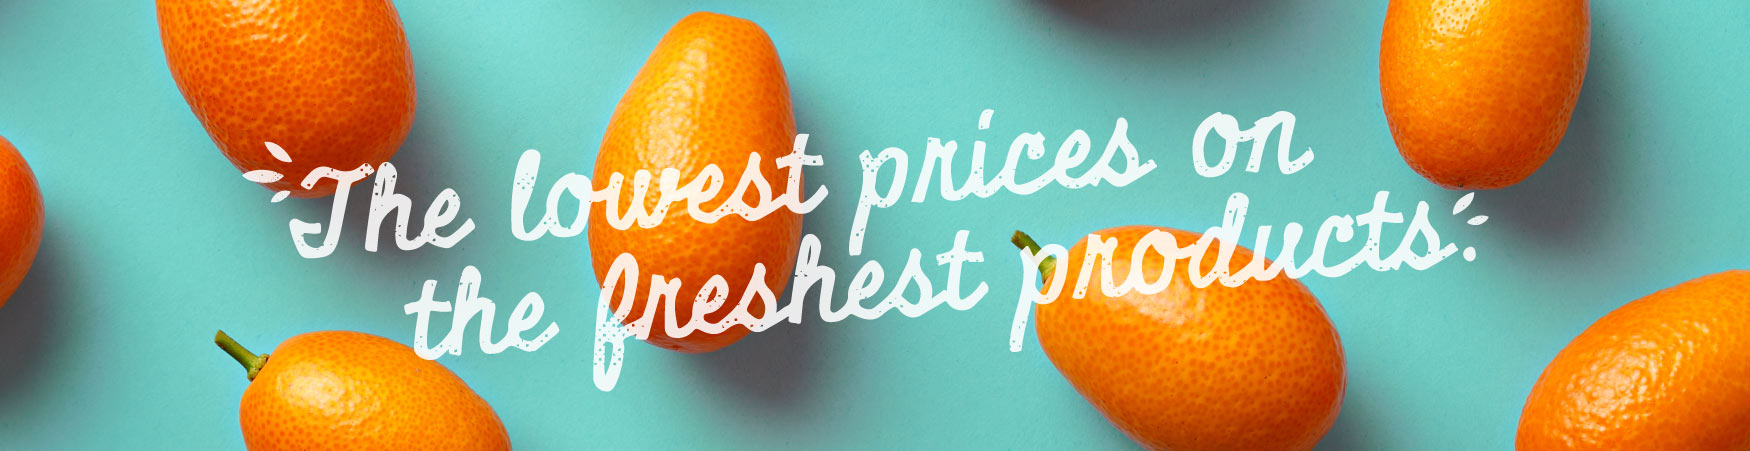 The lowest prices on the freshest products.